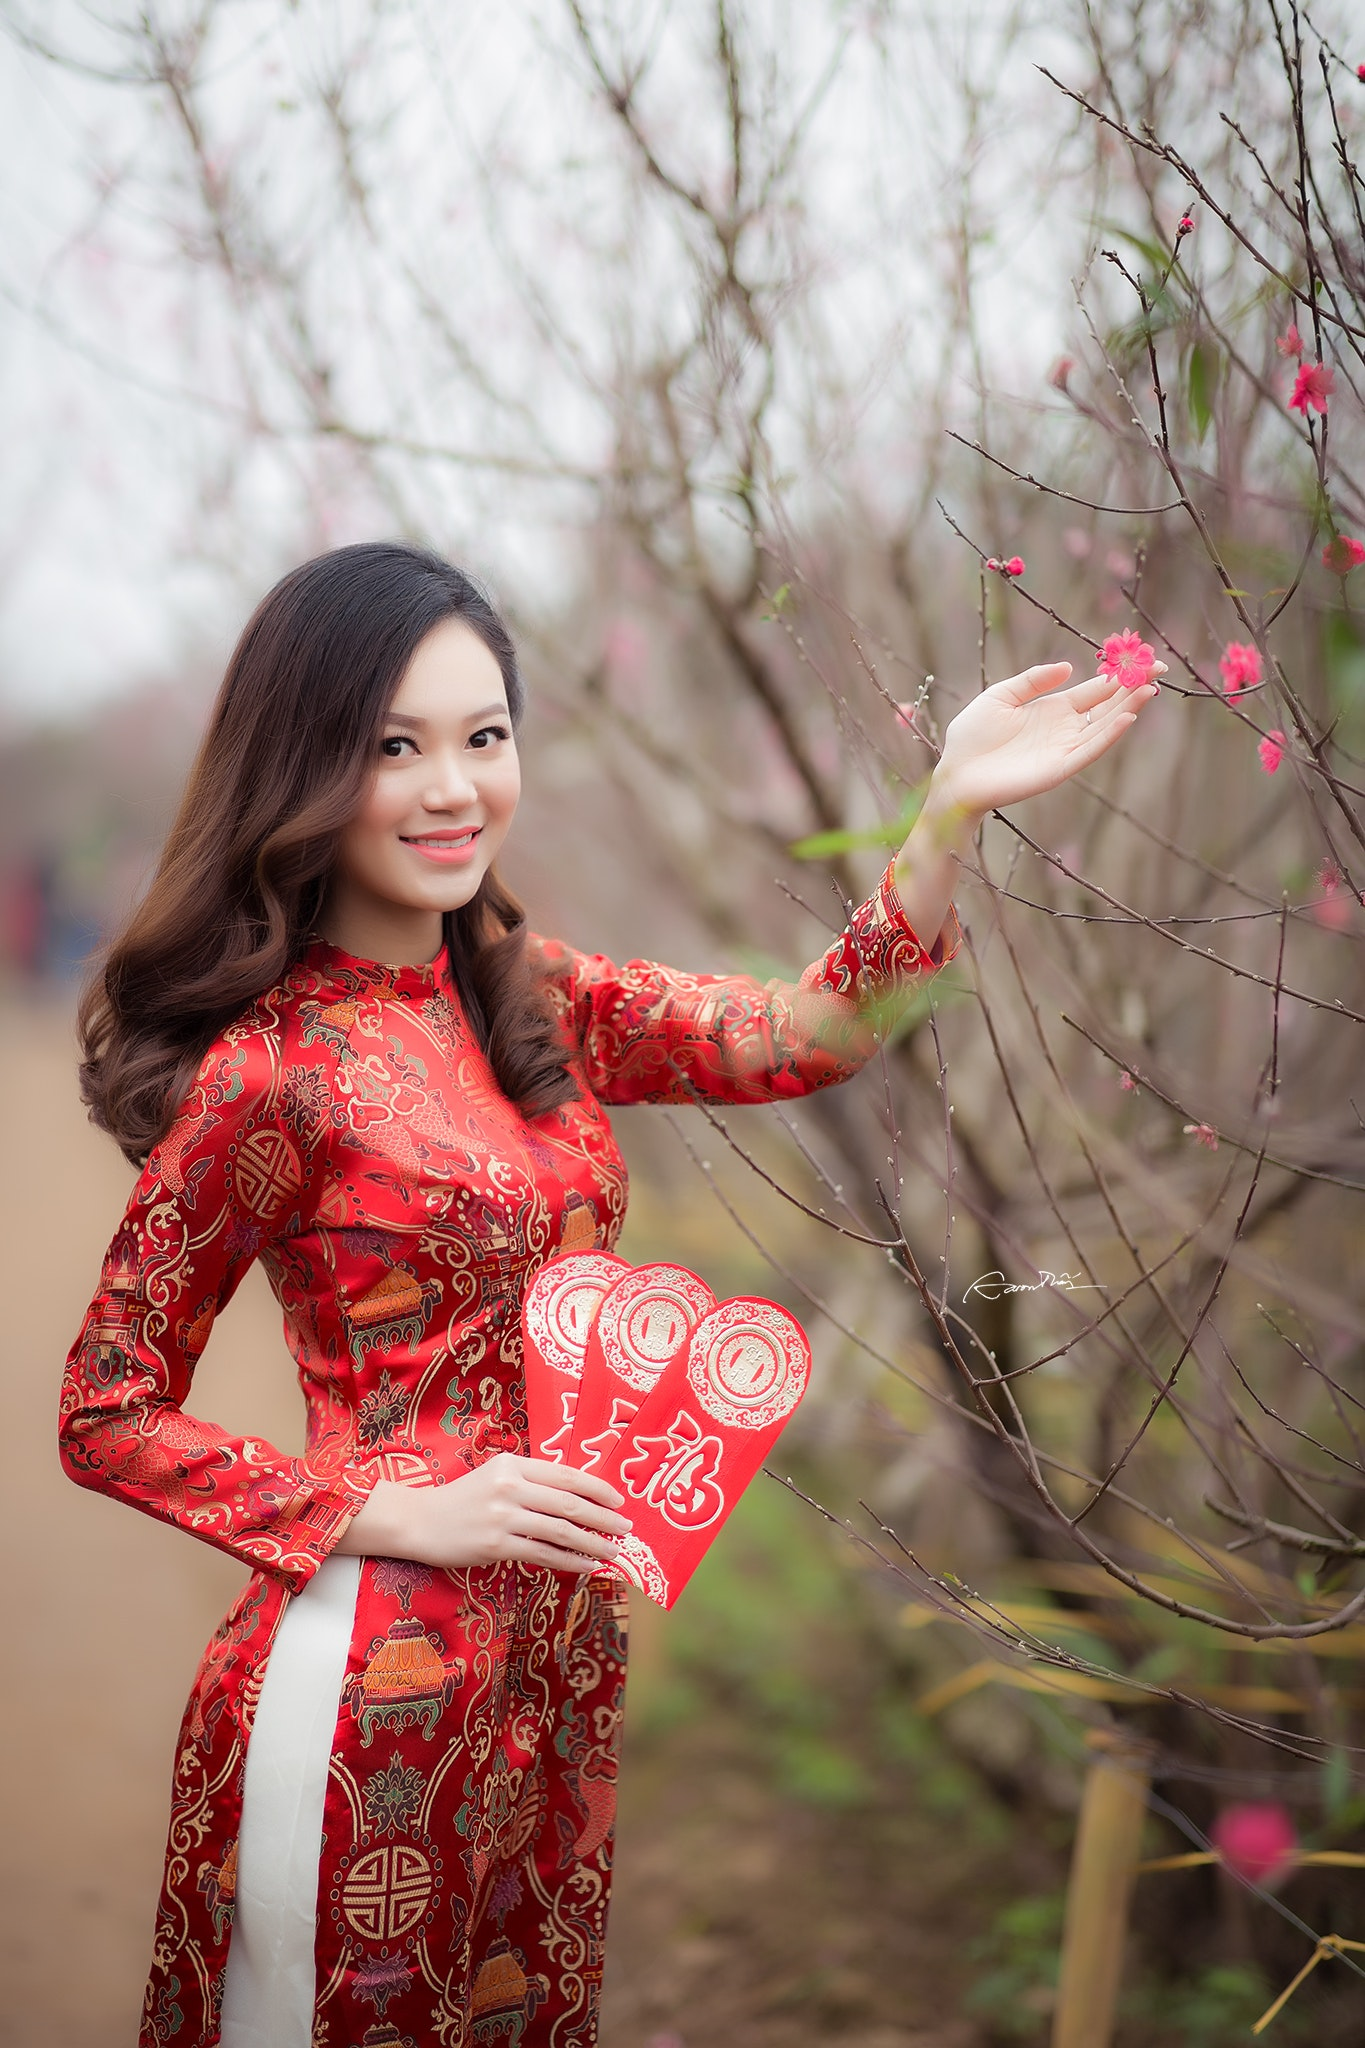 Woman Wearing Red Long-sleeved Dress Holding Pink Petaled Flower, Attractive, Outdoors, Young, Woman, HQ Photo